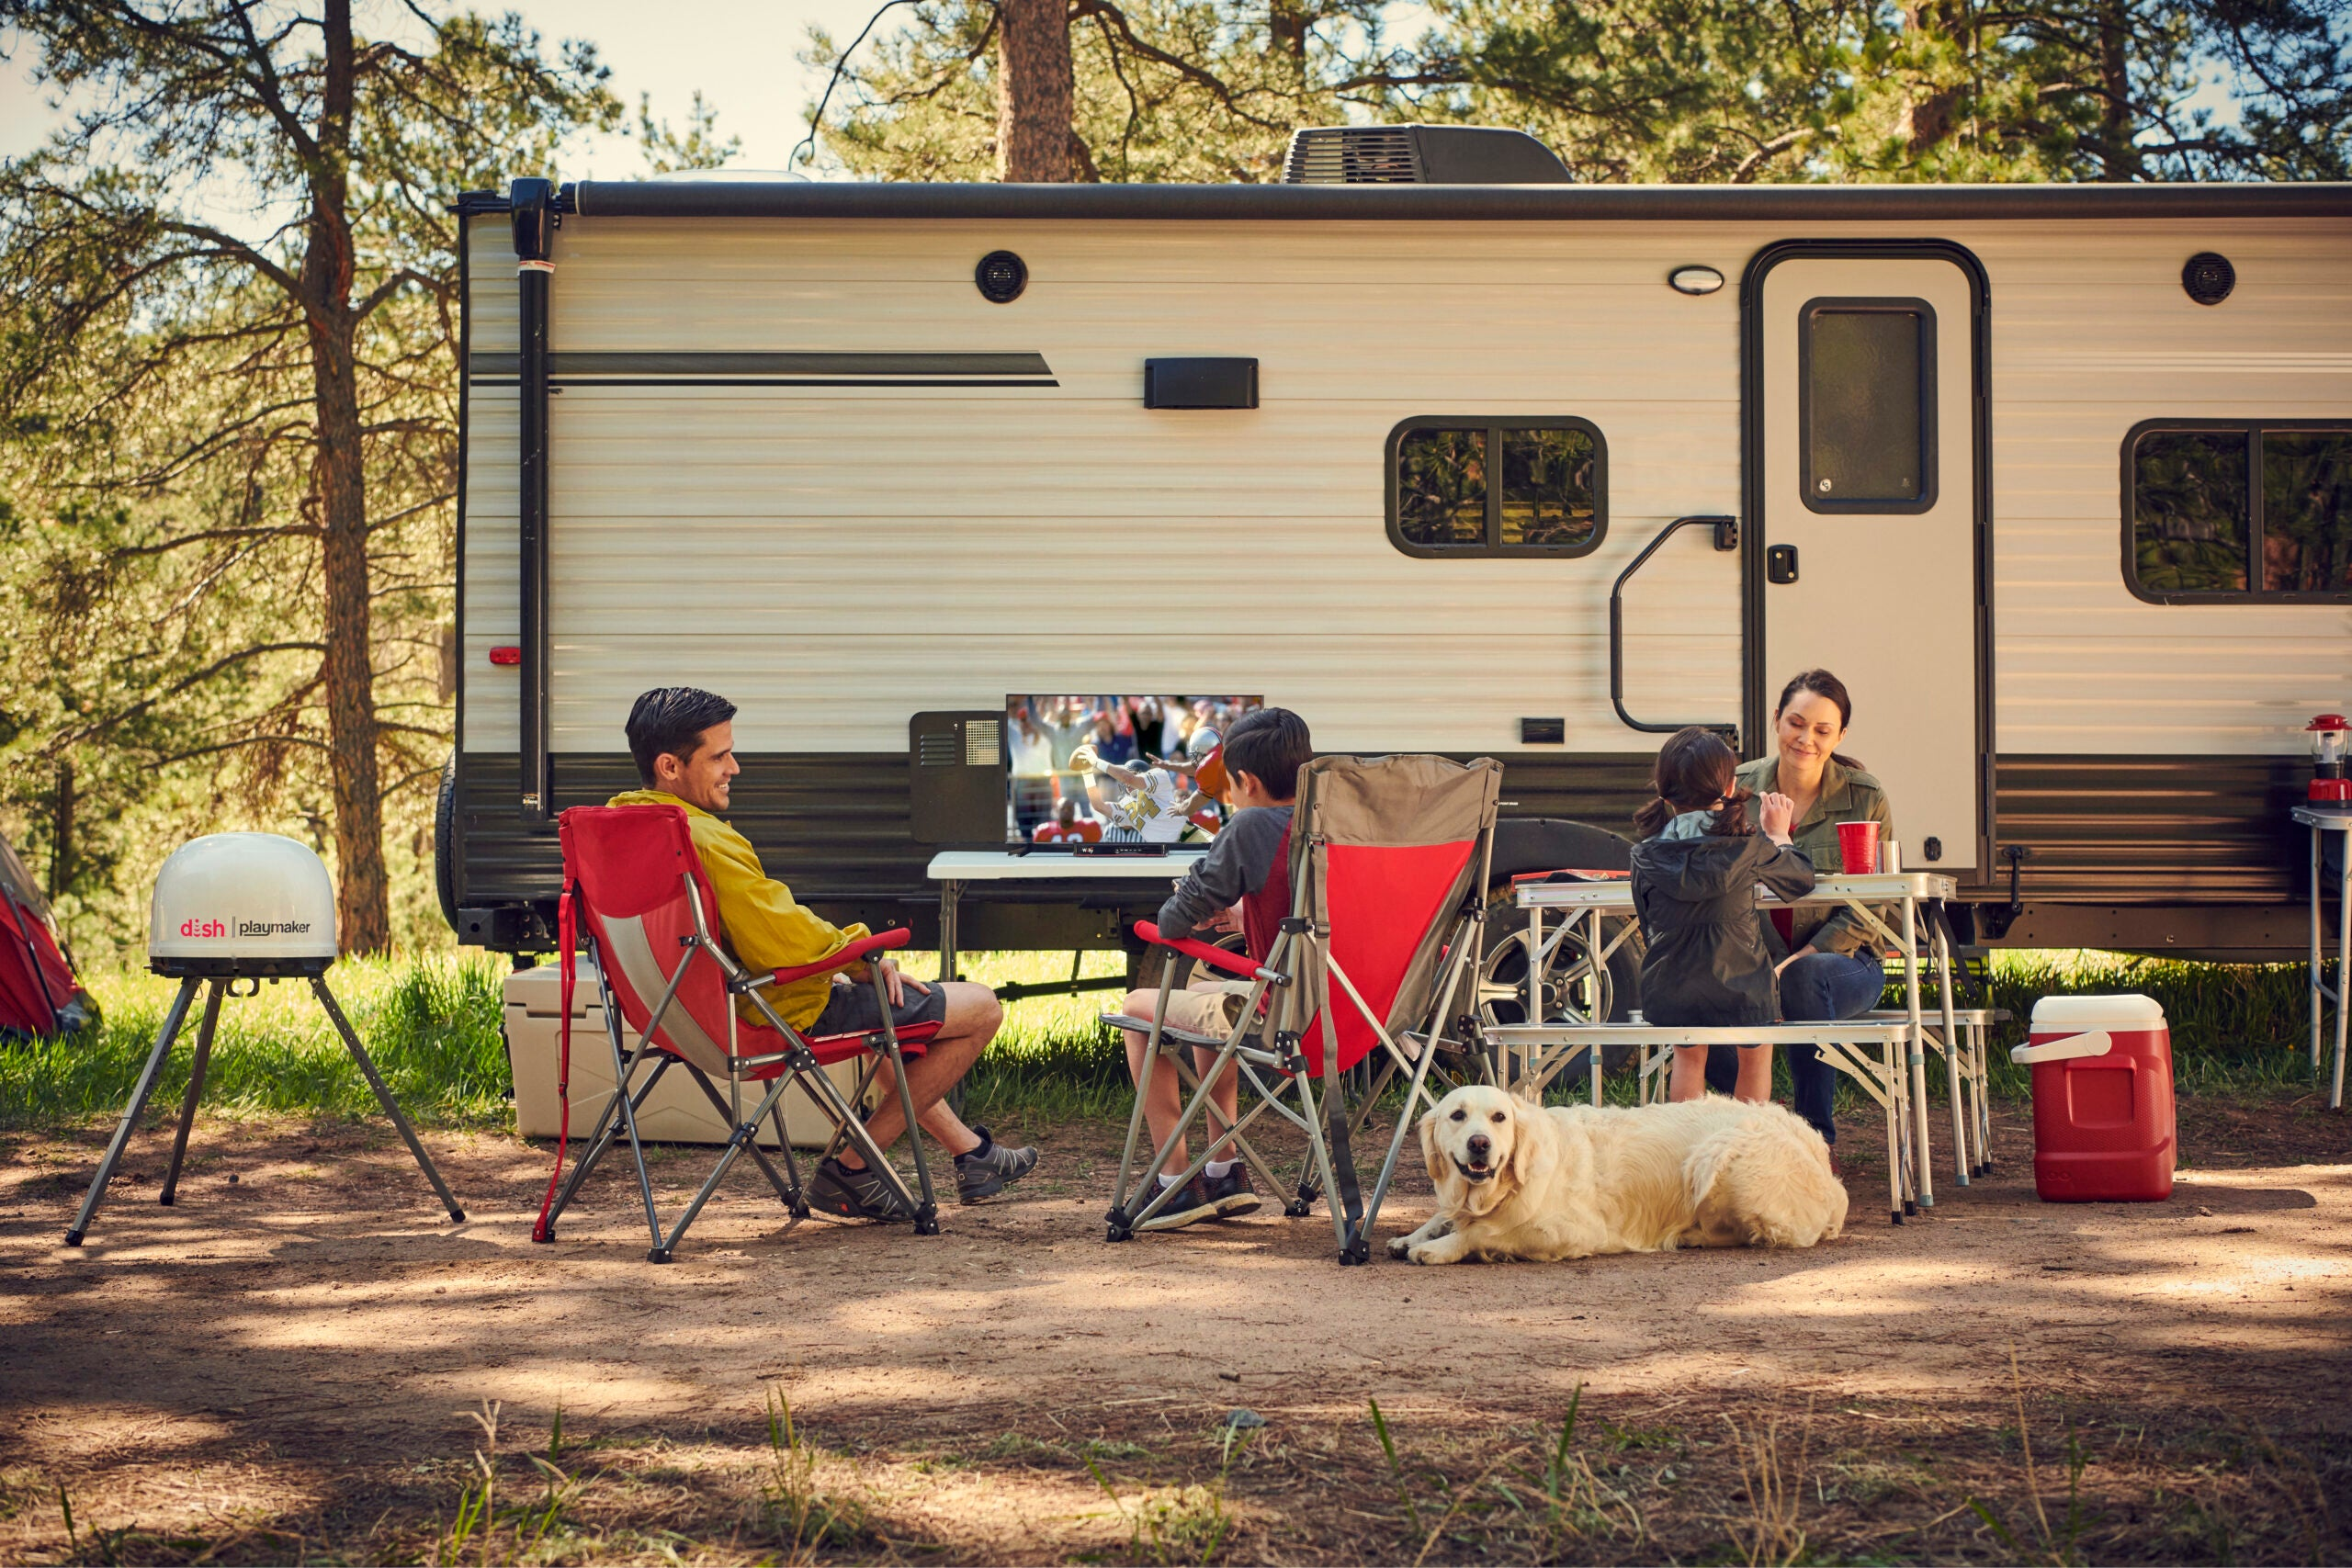 A campsite with people and dogs and a DISH Outdoors and television.